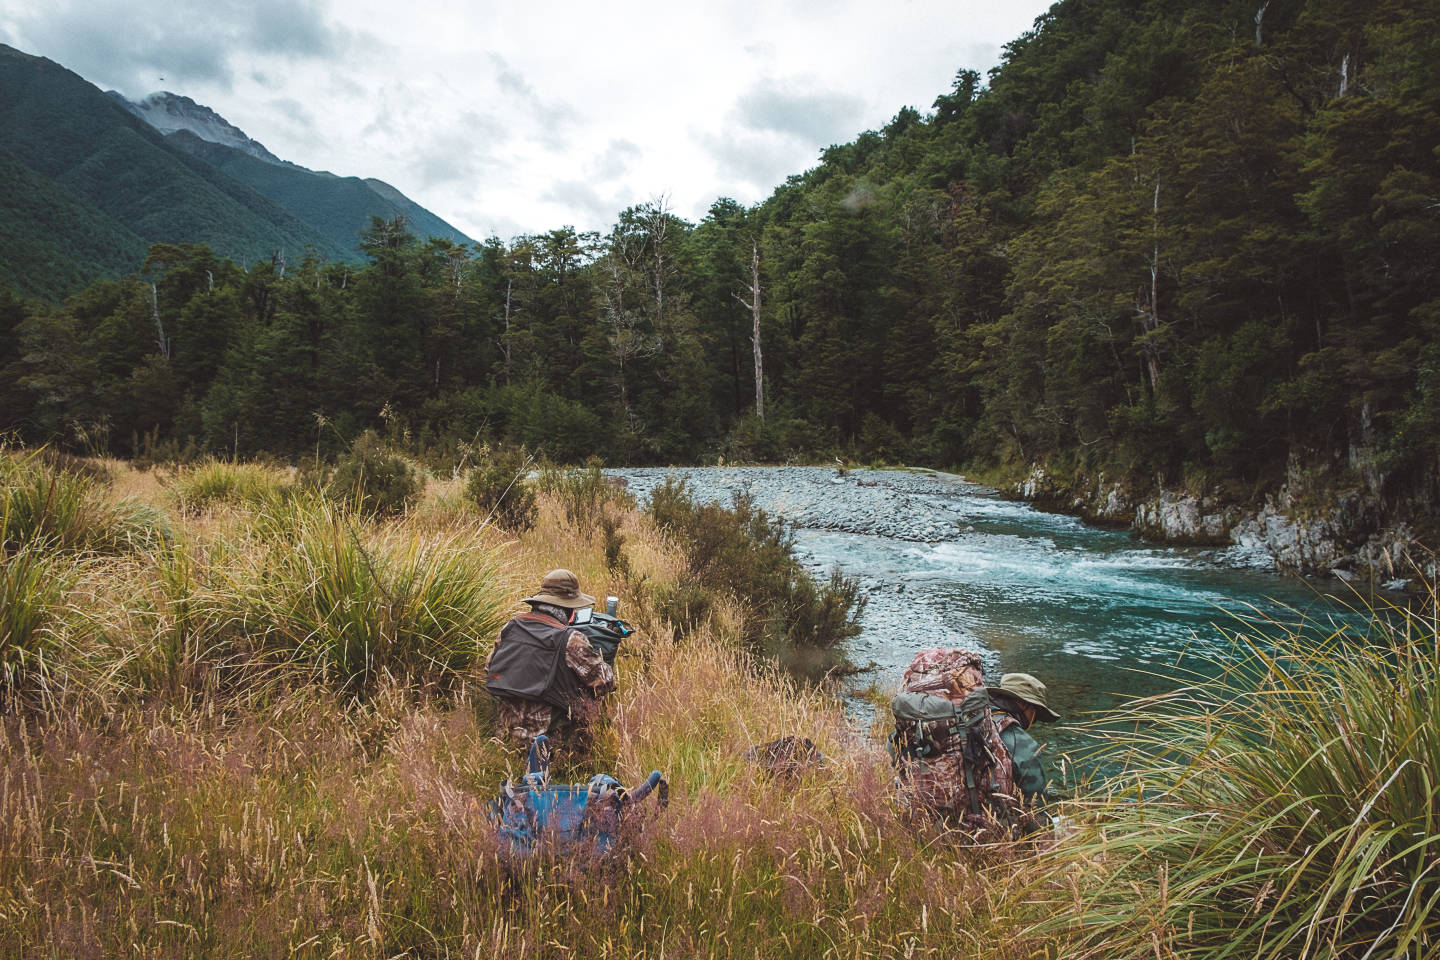 Flyfishing in the south with Blair Daniel, flyfishing guide.